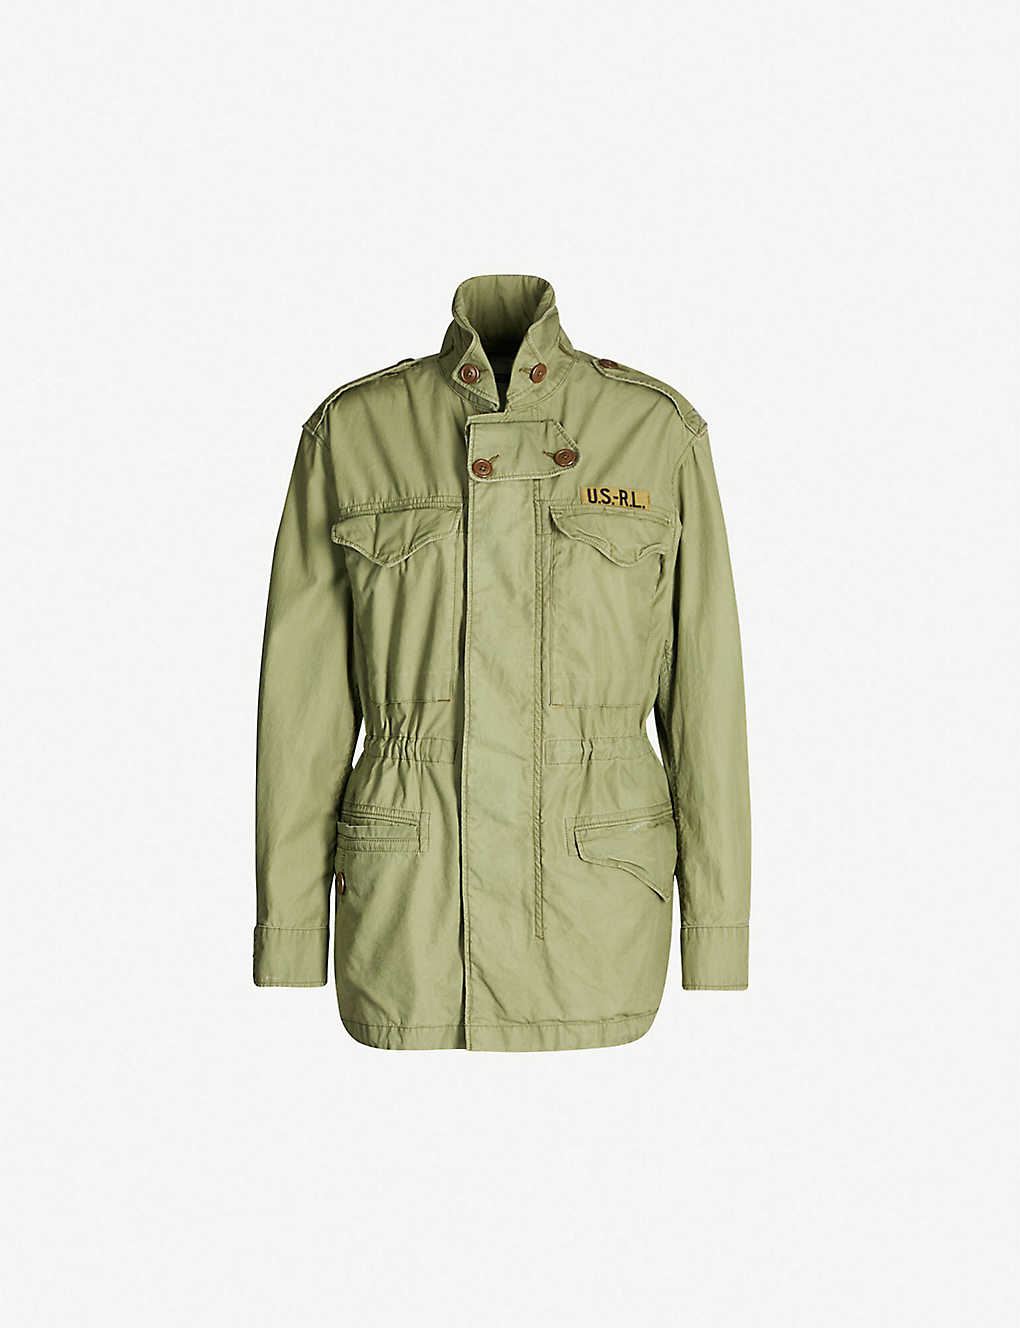 POLO RALPH LAUREN - Military cotton-twill jacket  0878c642a3d5f